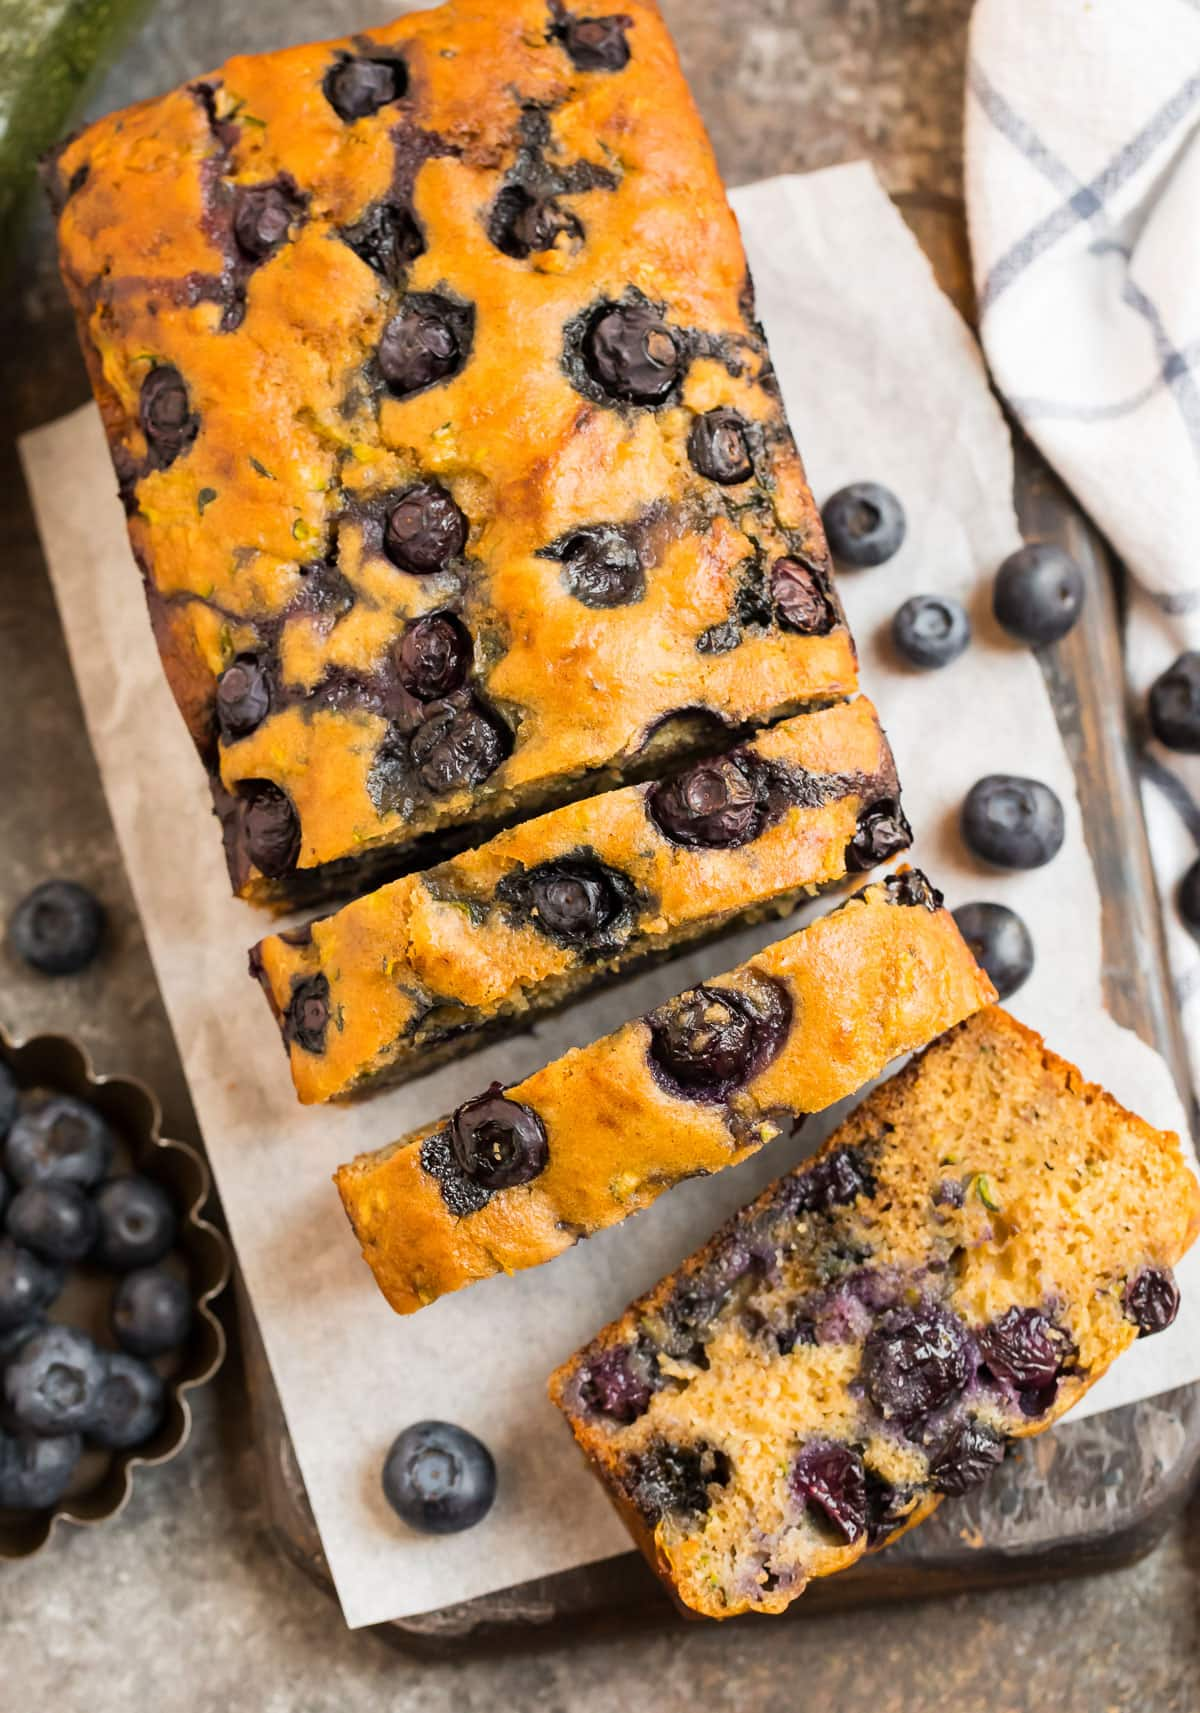 Zucchini bread with blueberries